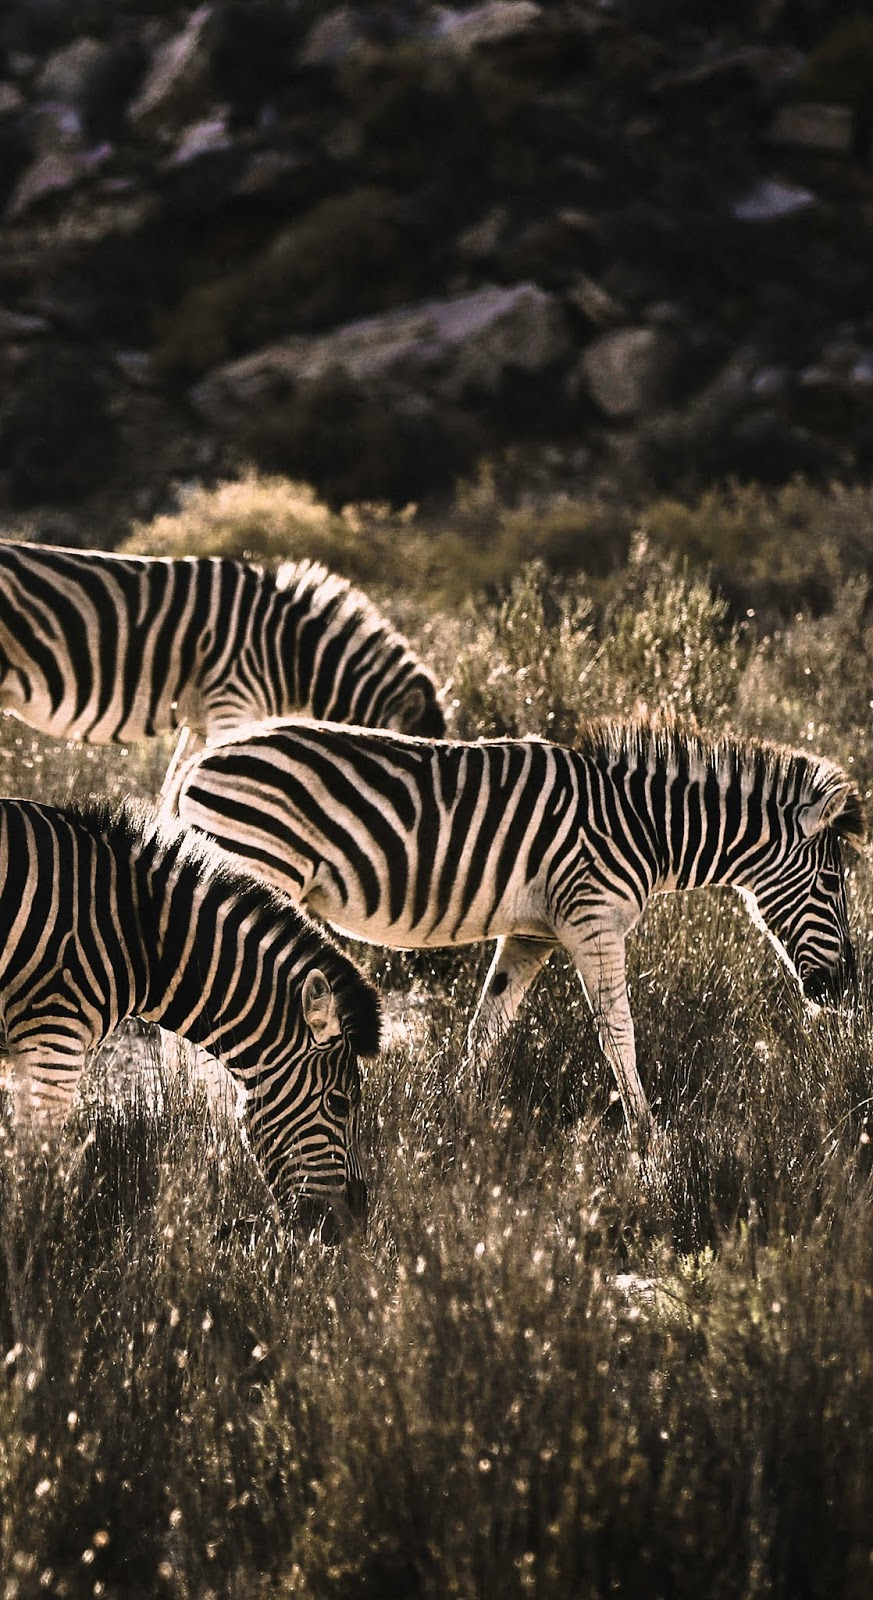 Zebras at morning sunrise.